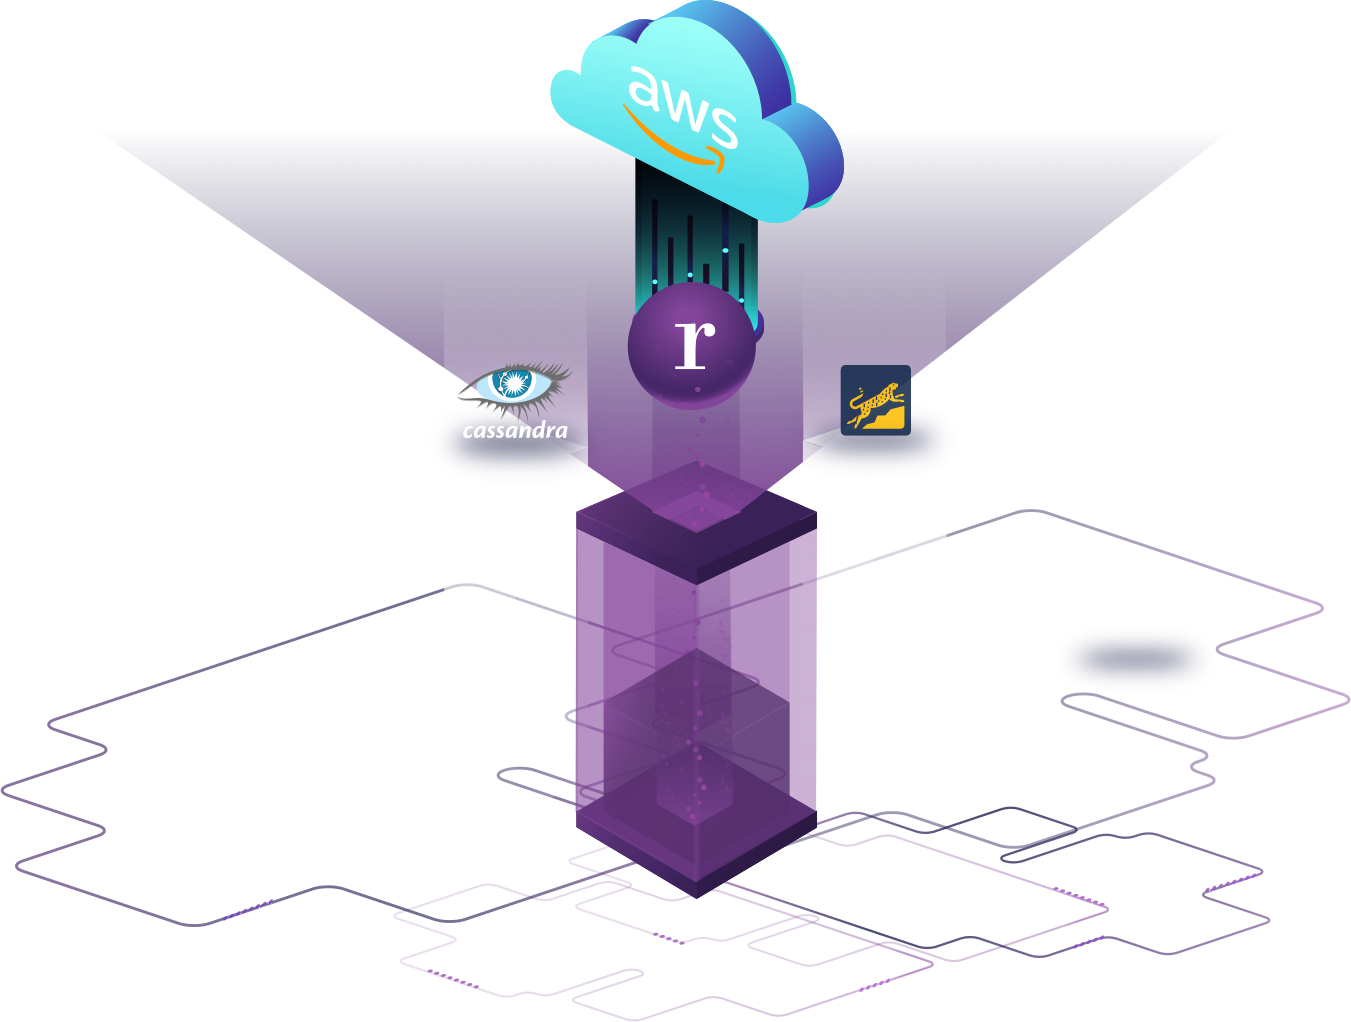 rDE on AWS transparent background